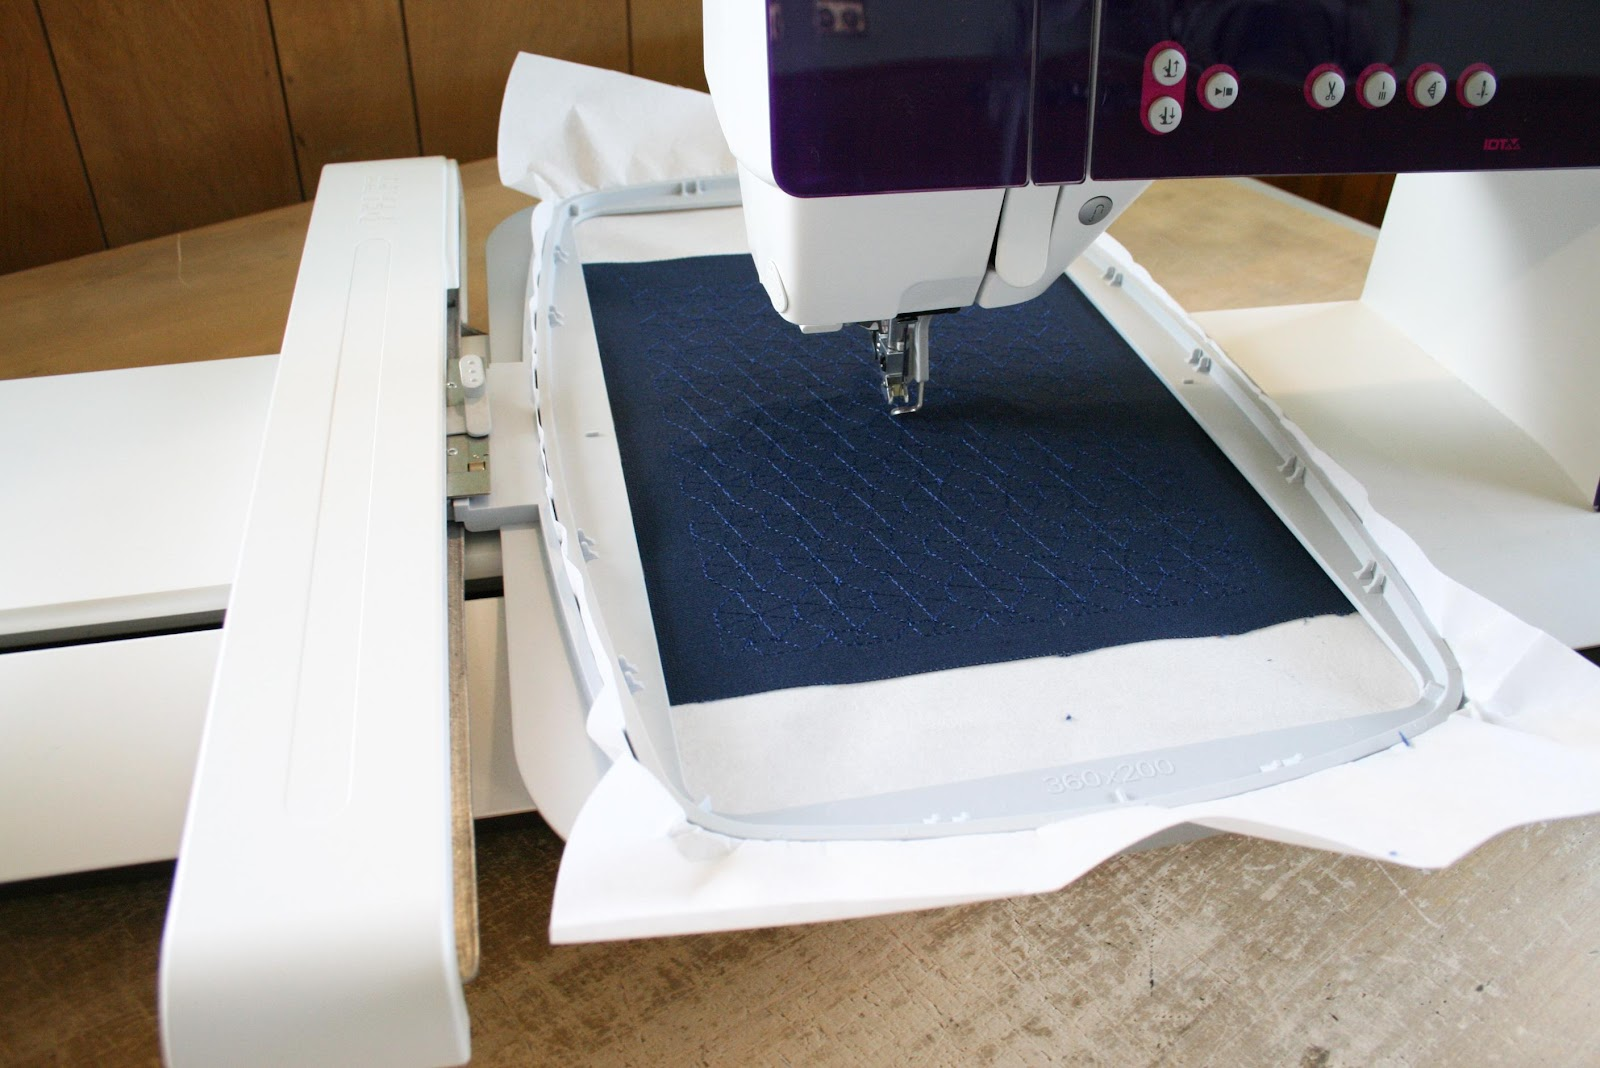 Mystery Sew Along Part 2: Download Latest Design + Beginning Construction